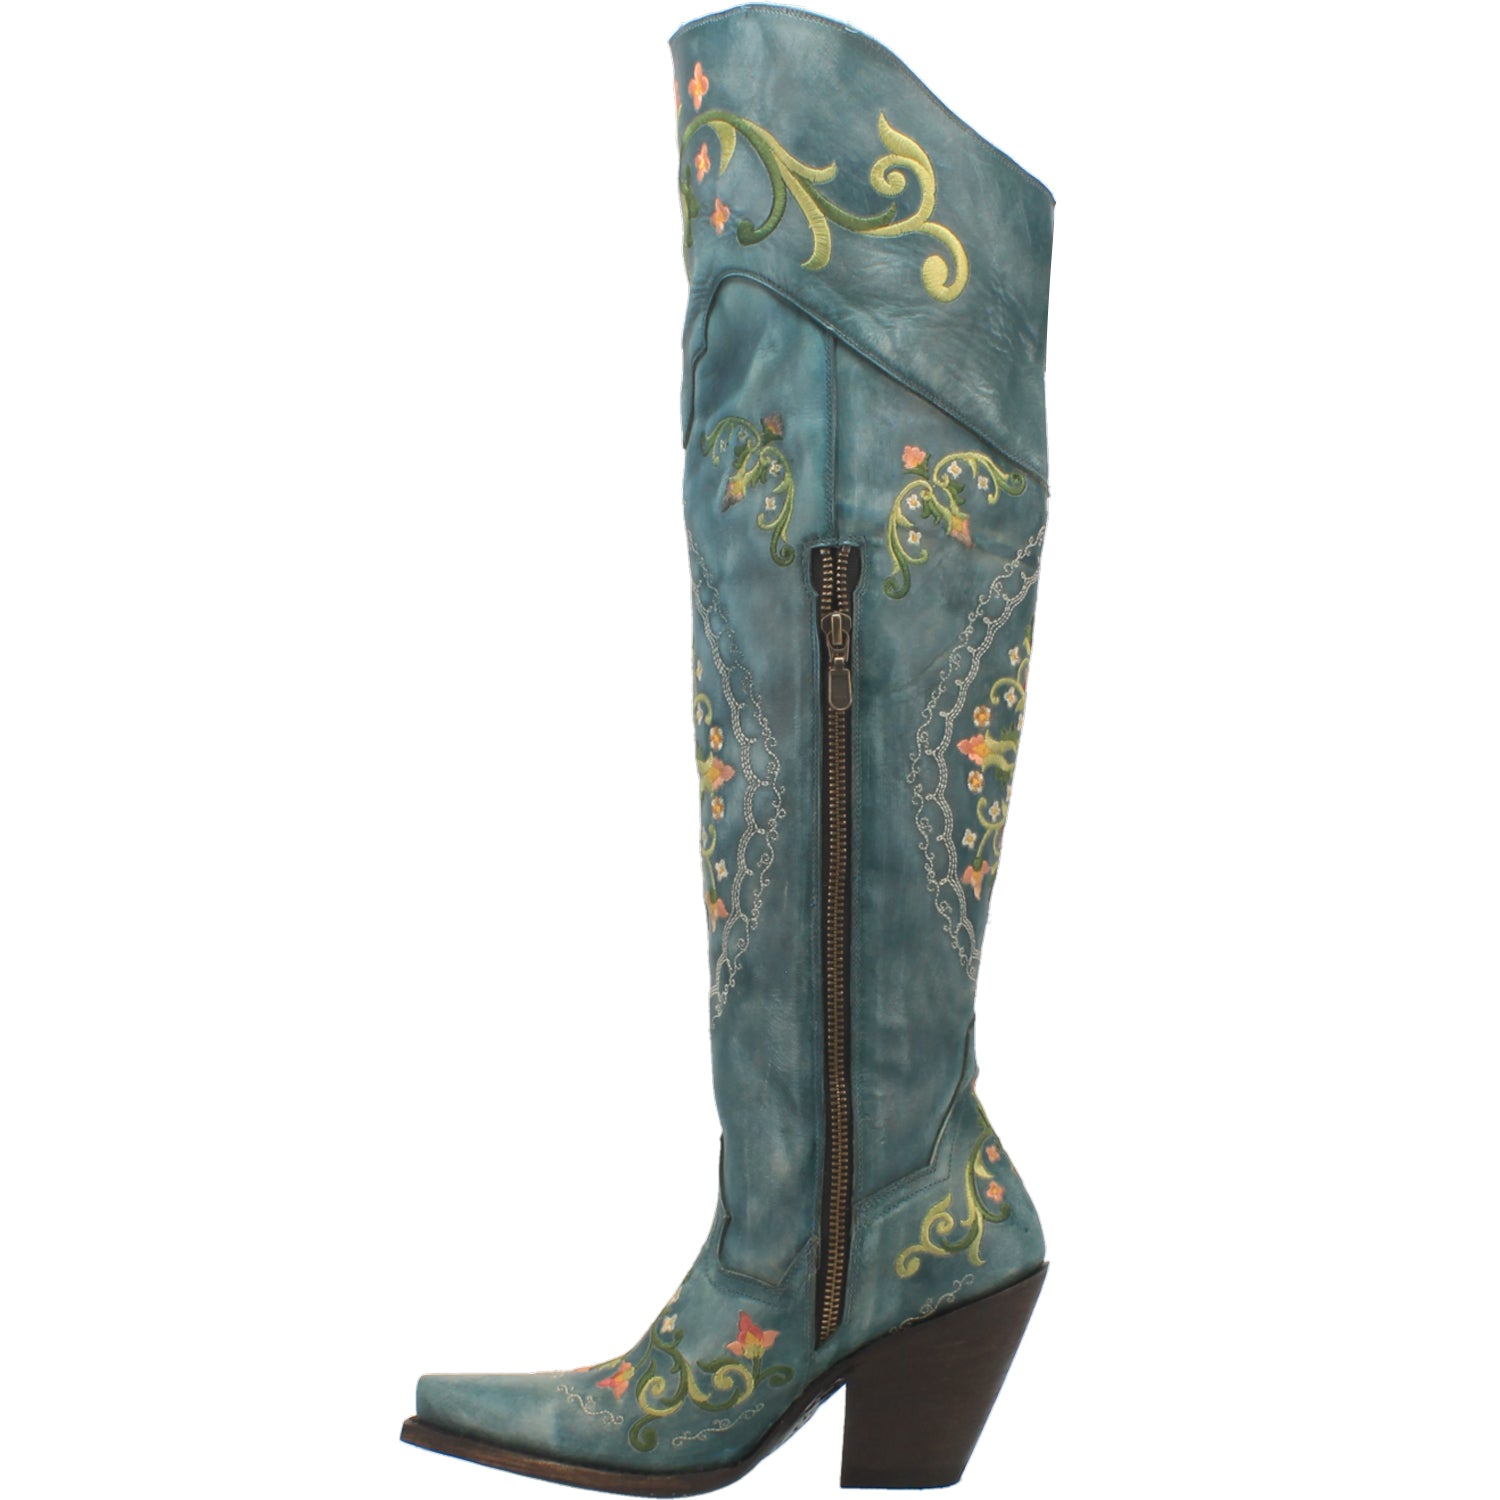 FLOWER CHILD LEATHER BOOT 15267551281194